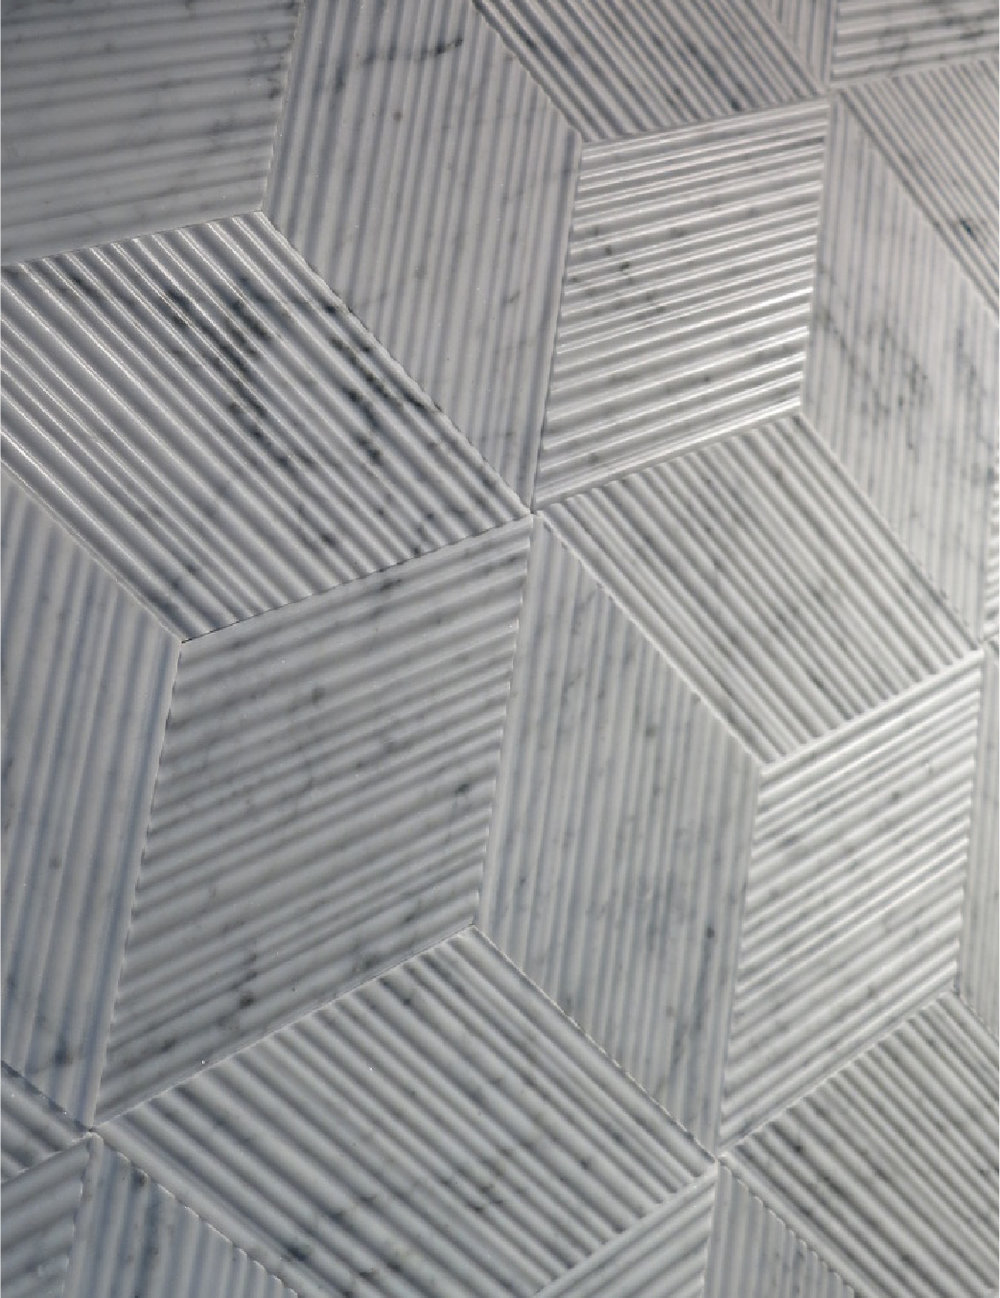 Dynamic tessellation of Carrara marble tiles